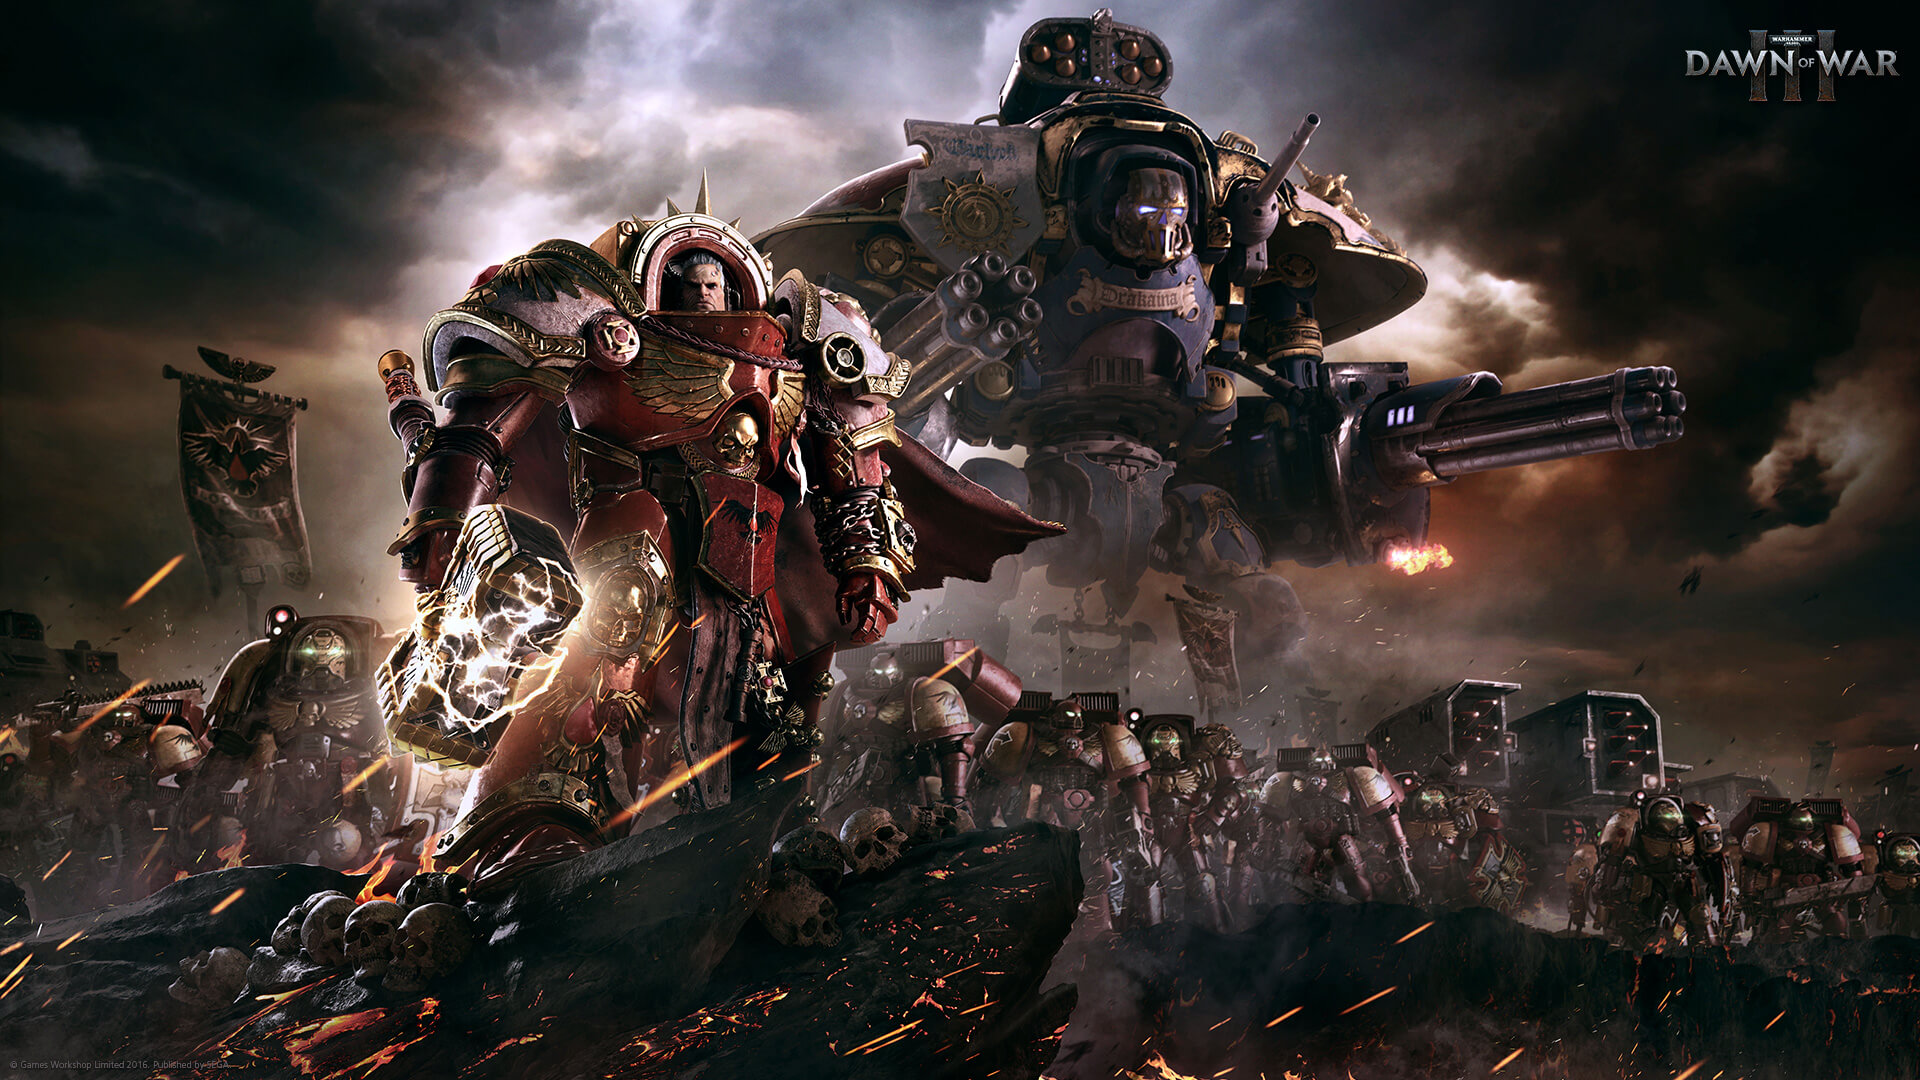 Dawn of War III Release Details Revealed